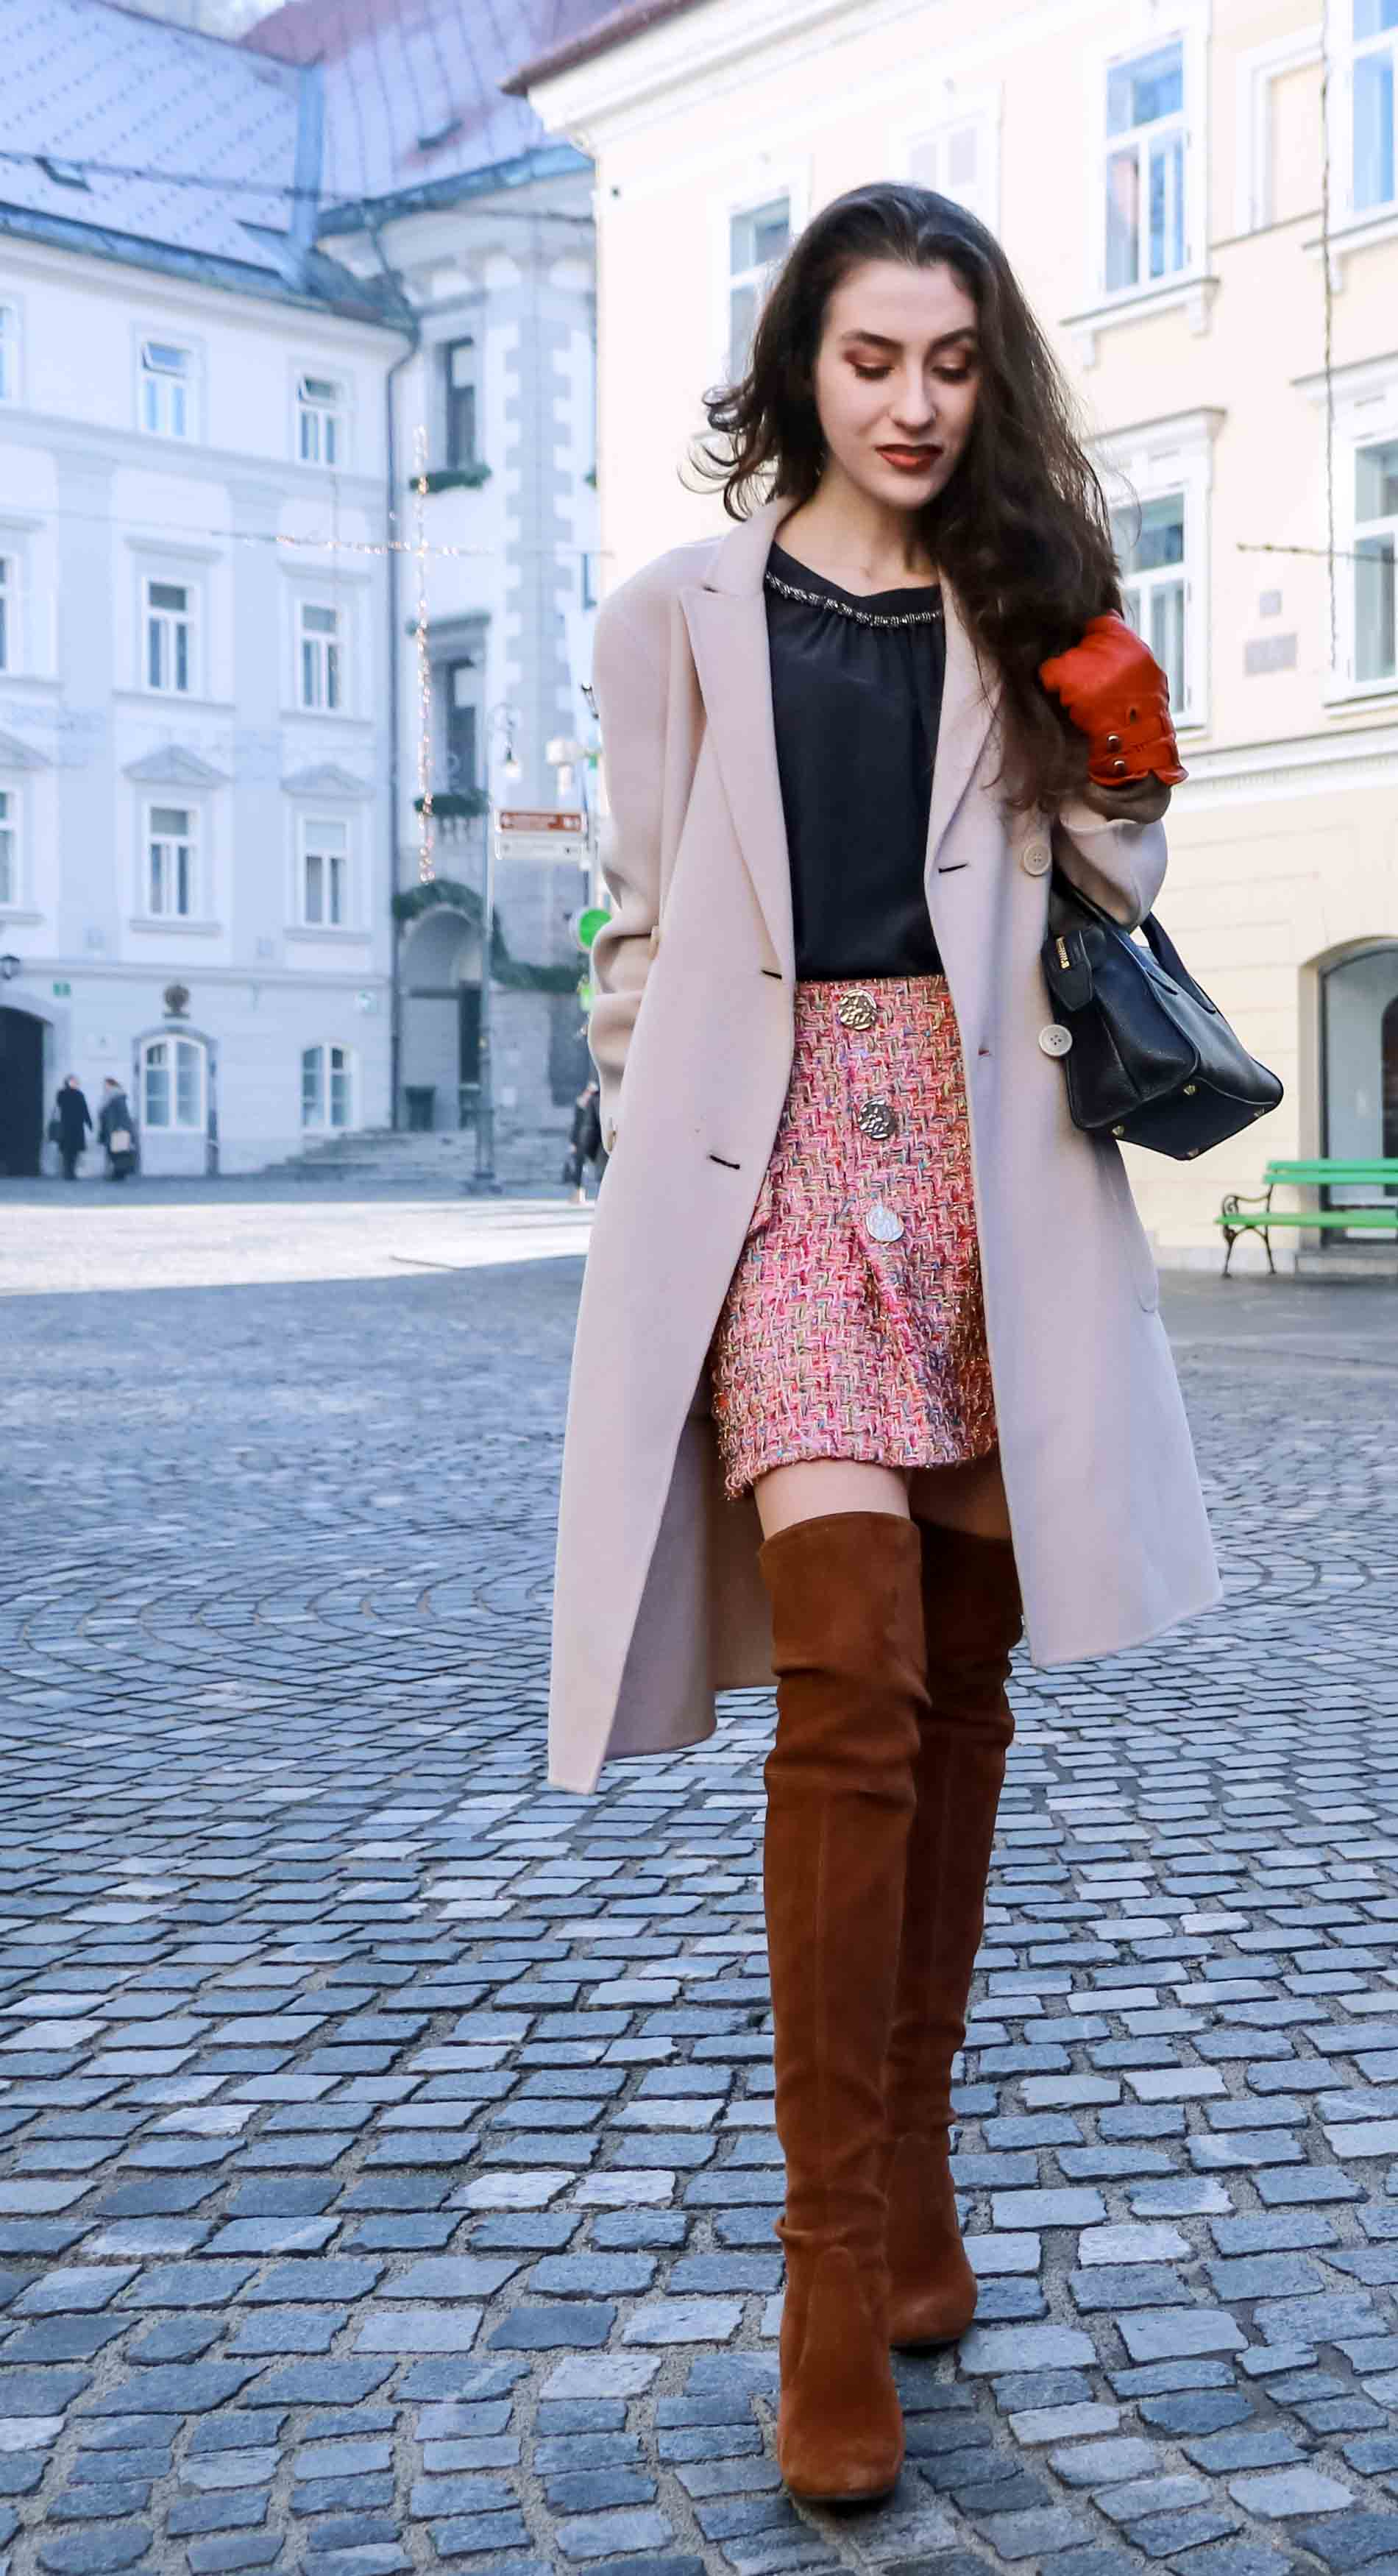 Fashion Blogger Veronika Lipar of Brunette from Wall Street wearing Storets pink tweed mini skirt, double breasted ivory coat from Weekend Maxmara, black silk blouse from Juicy couture, small black top handle bag, brown OTK boots from Stuart Weitzman this winter